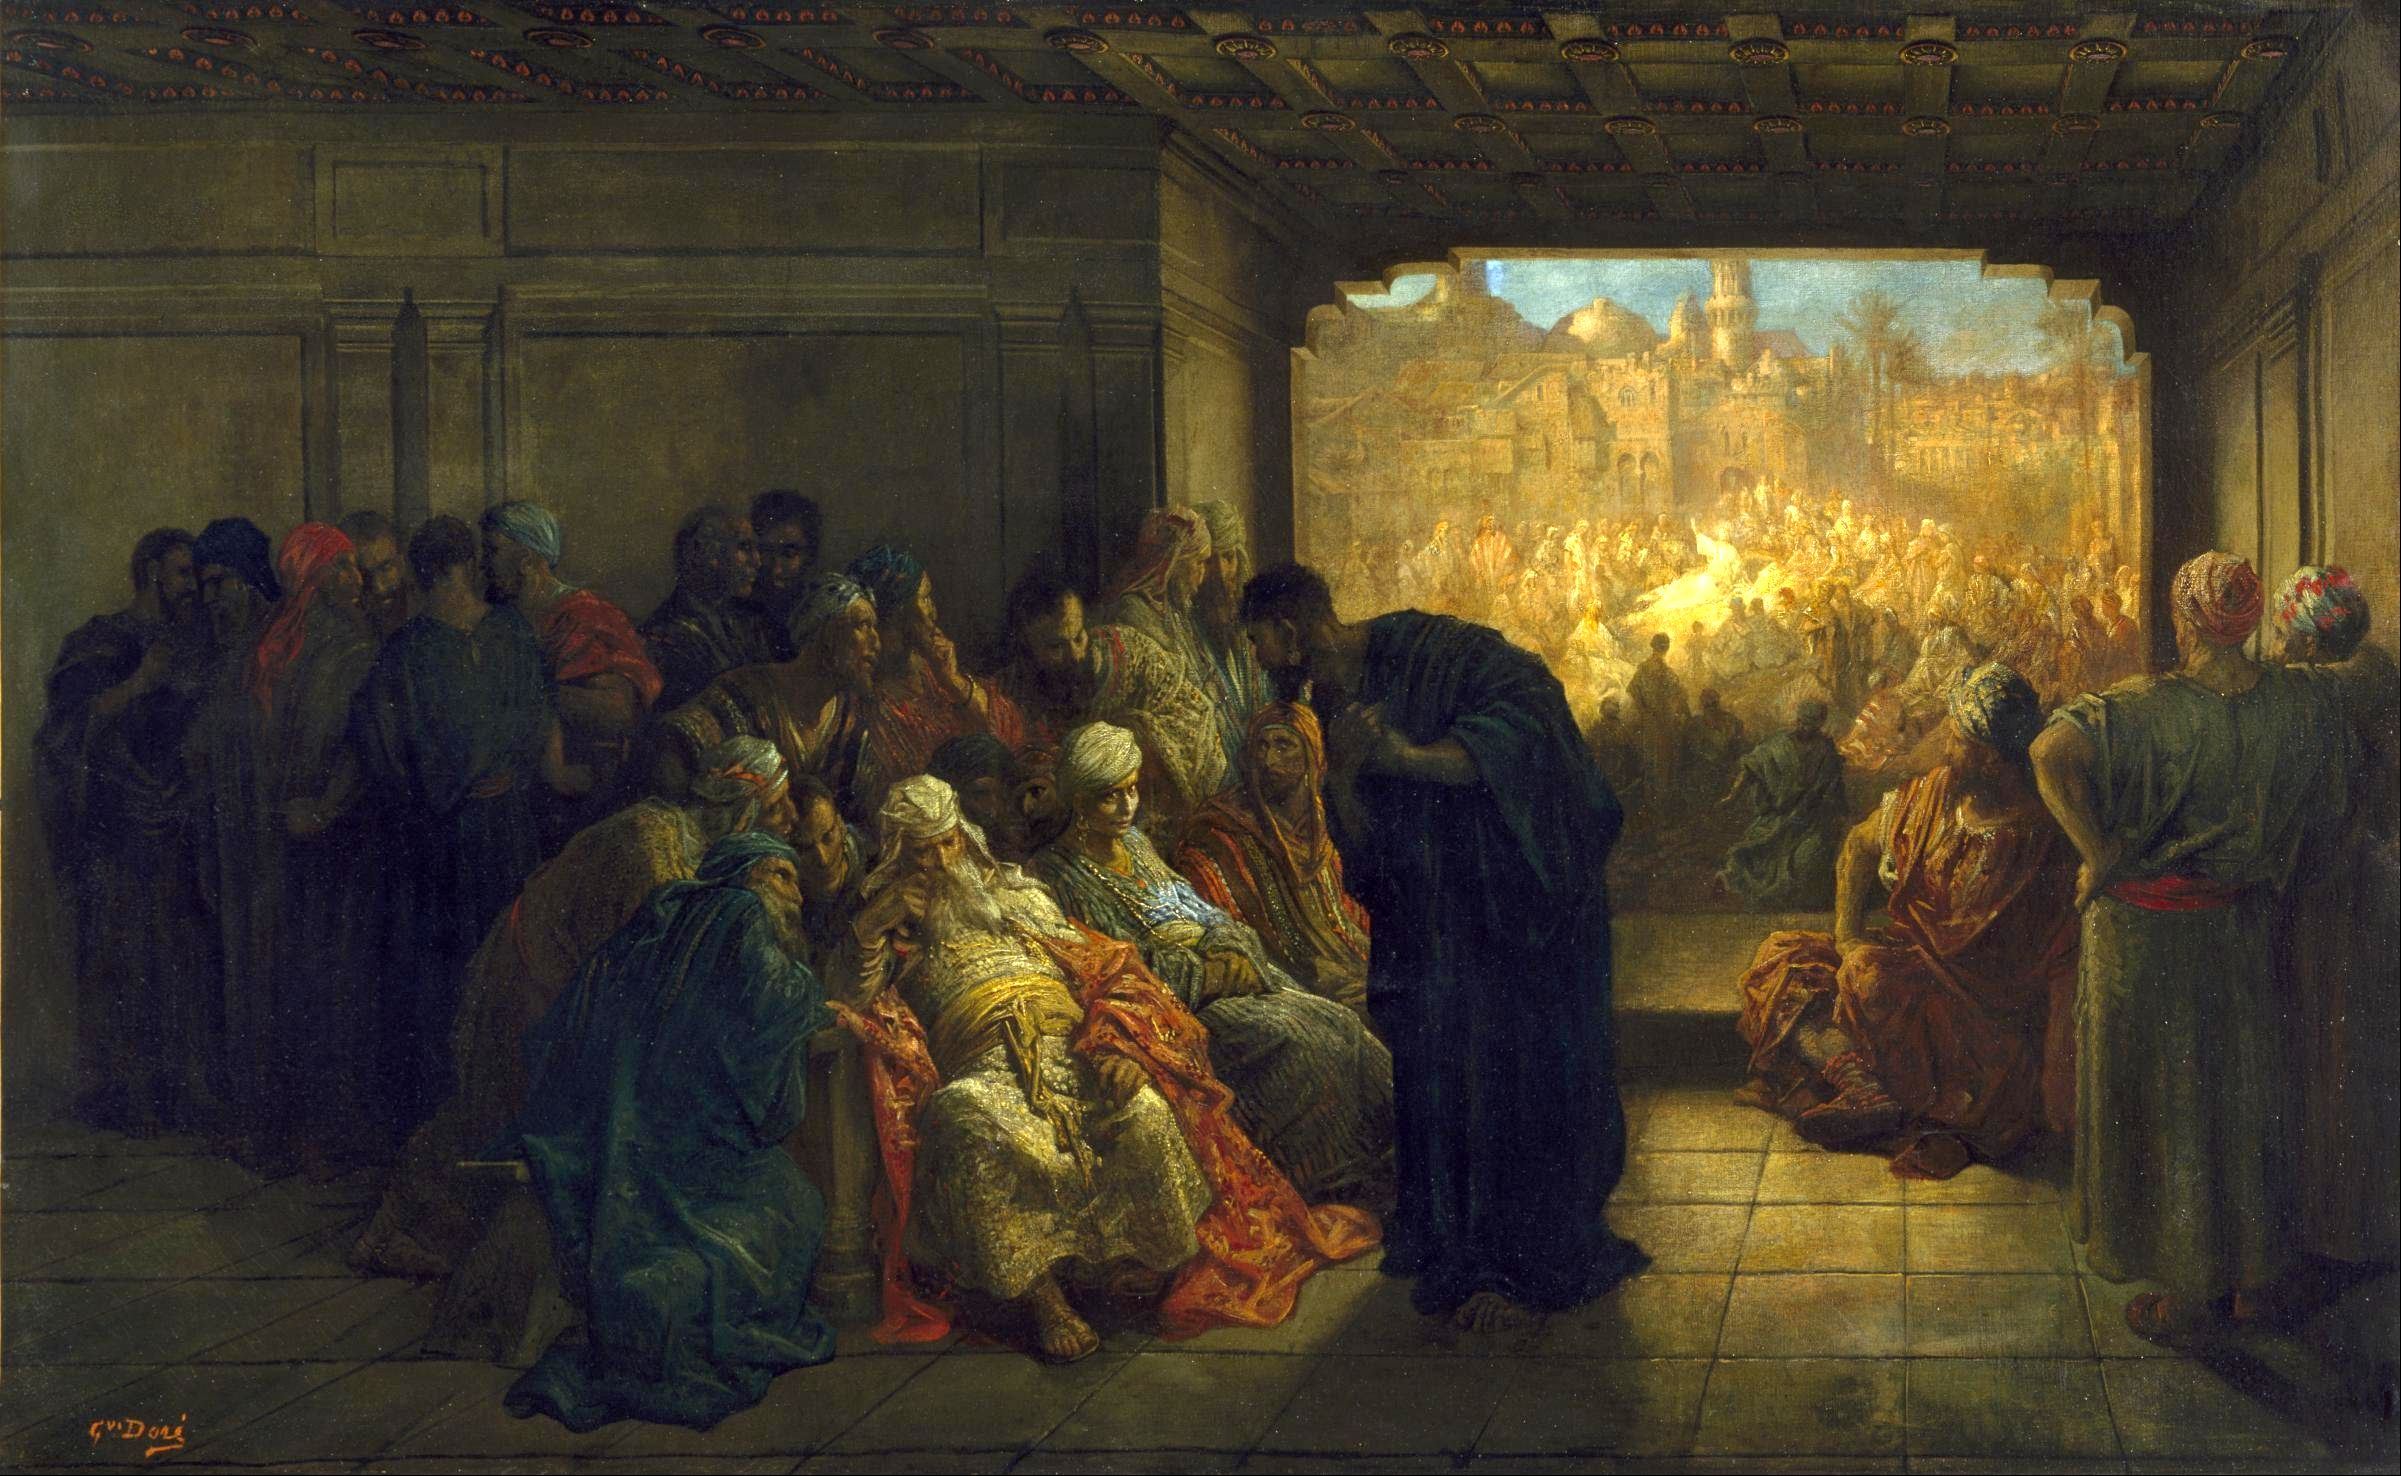 Gustave_Doré_-_The_House_of_Caiaphas_-_Google_Art_Project02